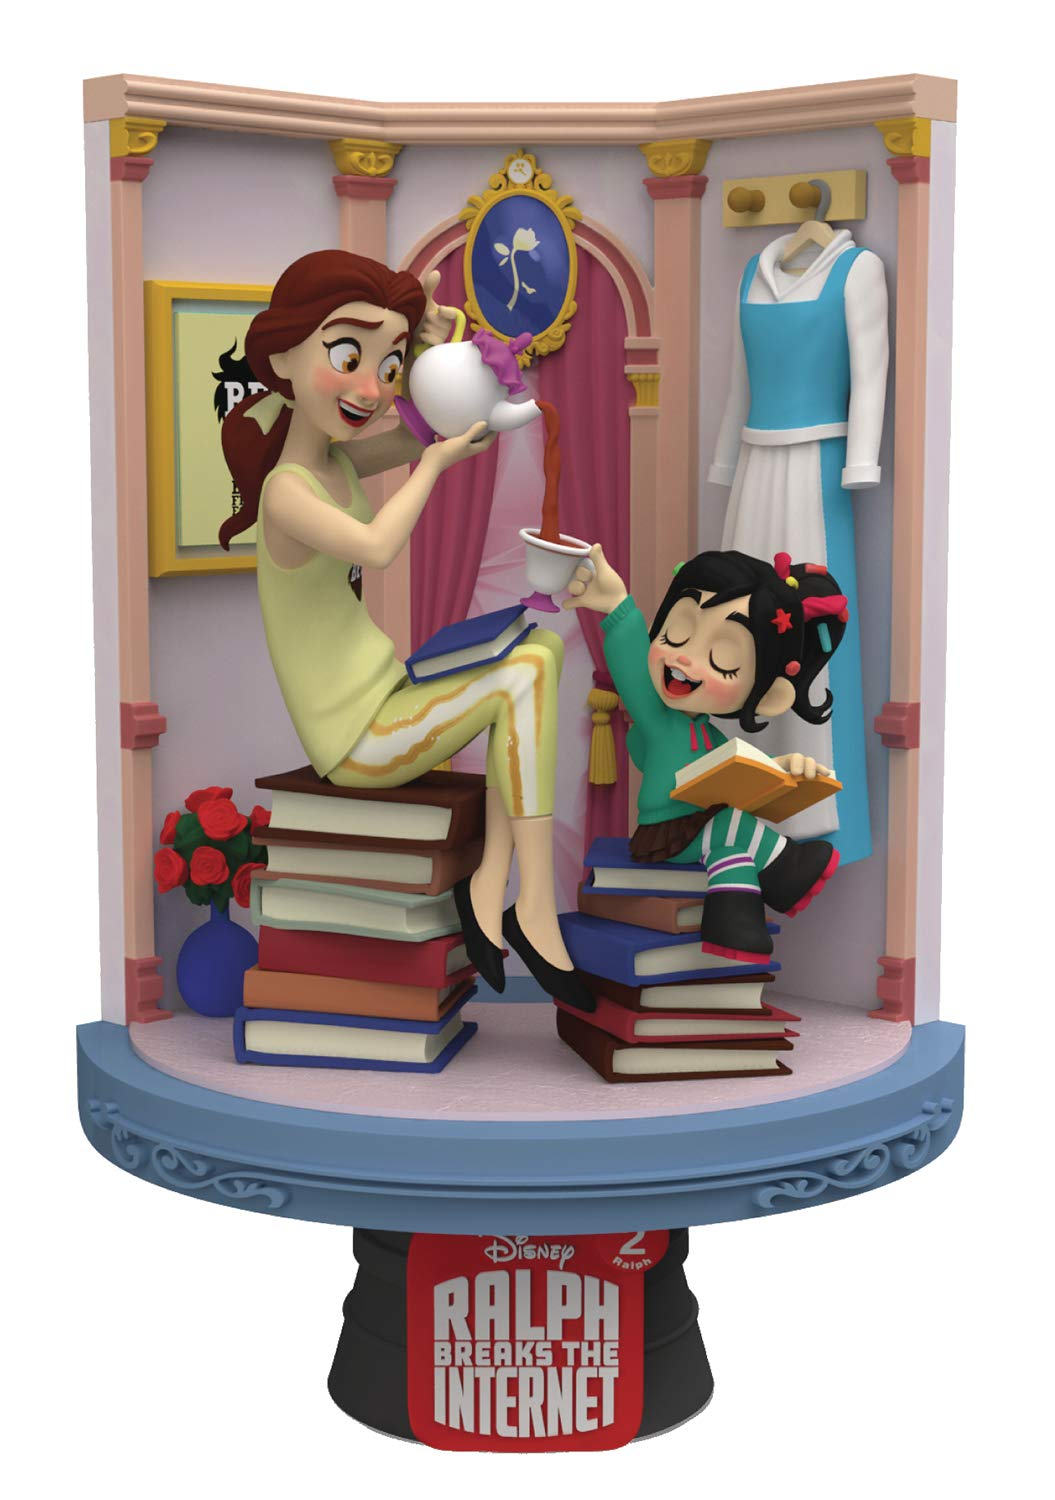 New Beast Kingdom Ralph Breaks The Internet Disney Princess D Stage Statues Are Out And Ready For Preorder Youloveit Com